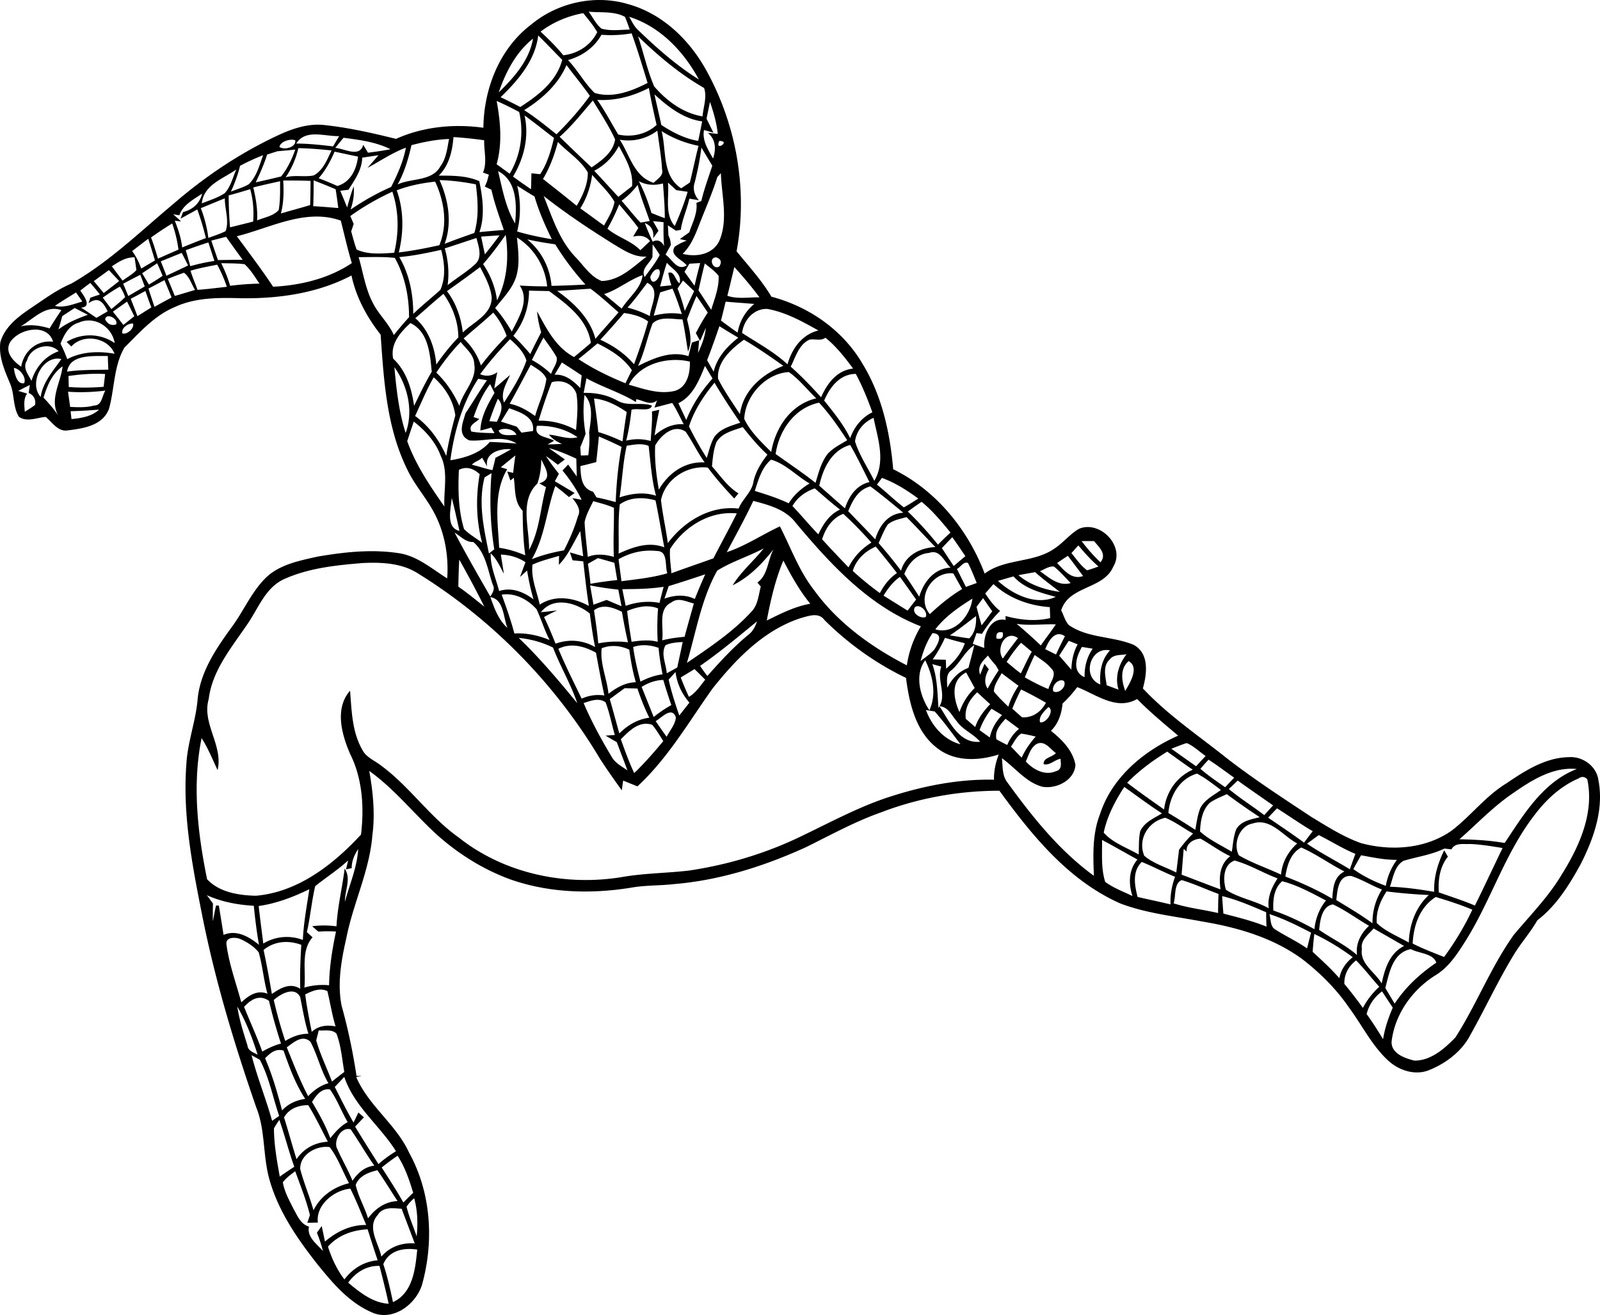 spiderman coloring pages kids printable - Colouring Pages For Kids